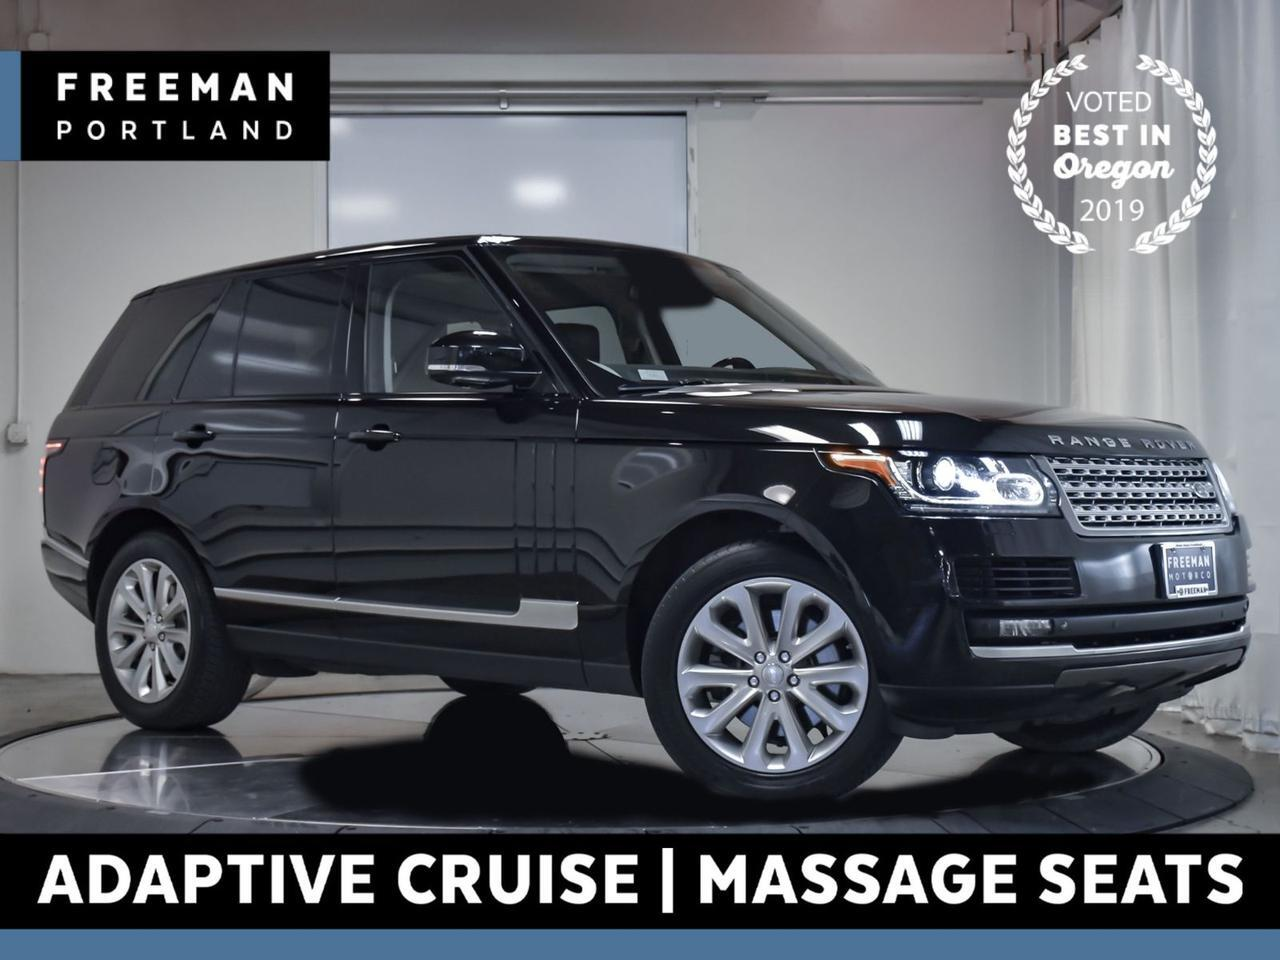 2014 Land Rover Range Rover HSE 4WD Adaptive Cruise Vented Massage Seats Portland OR